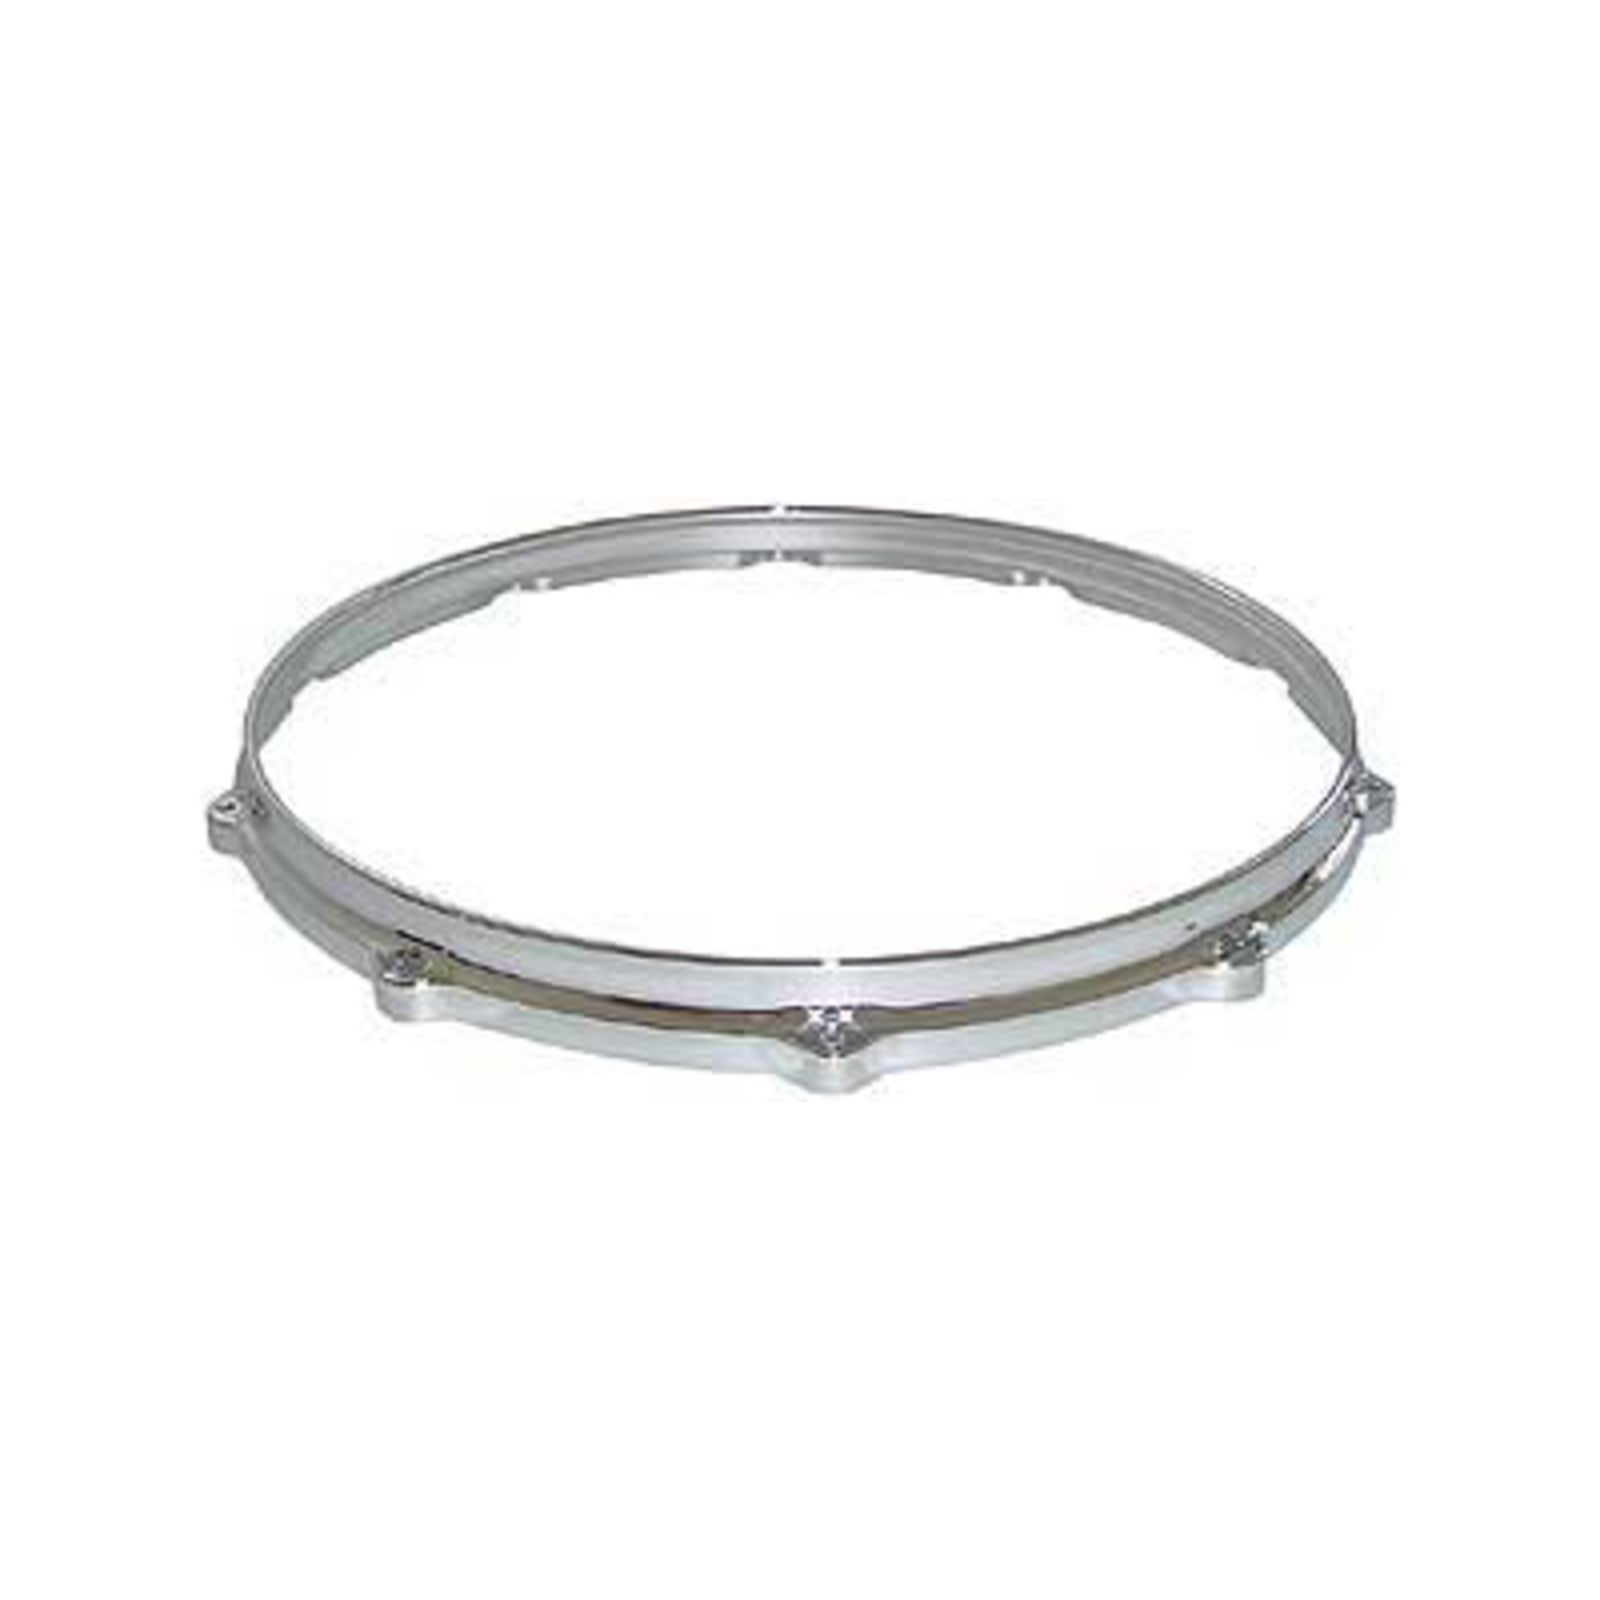 "Pearl Master Cast Hoop 13"" 6-Hole Product Image"